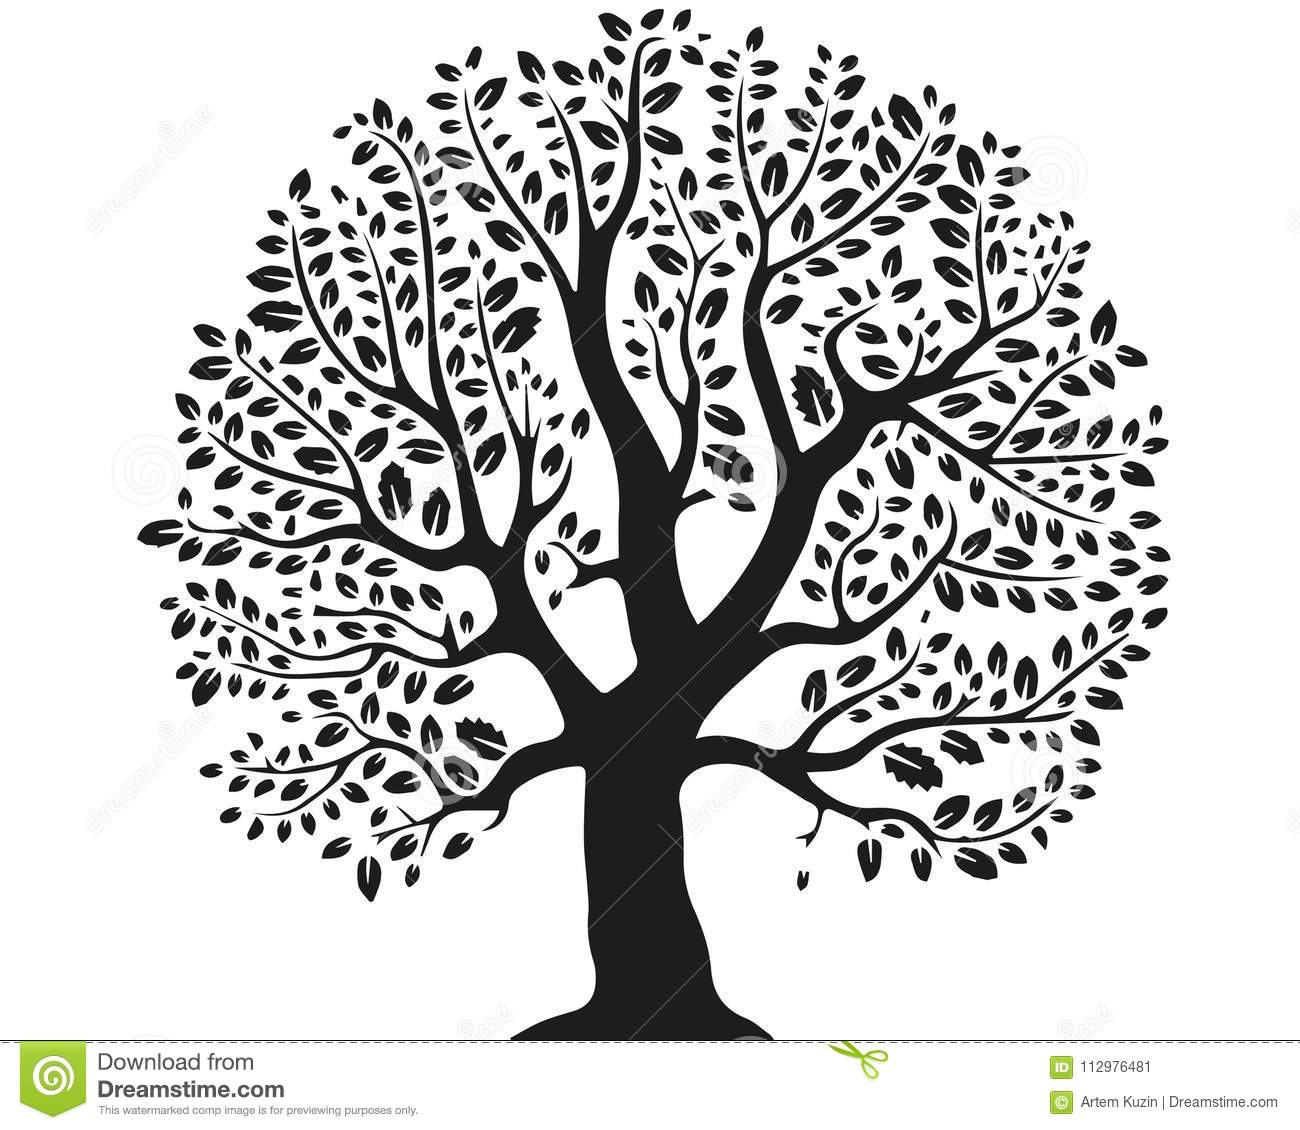 Fantastic tree on a white background